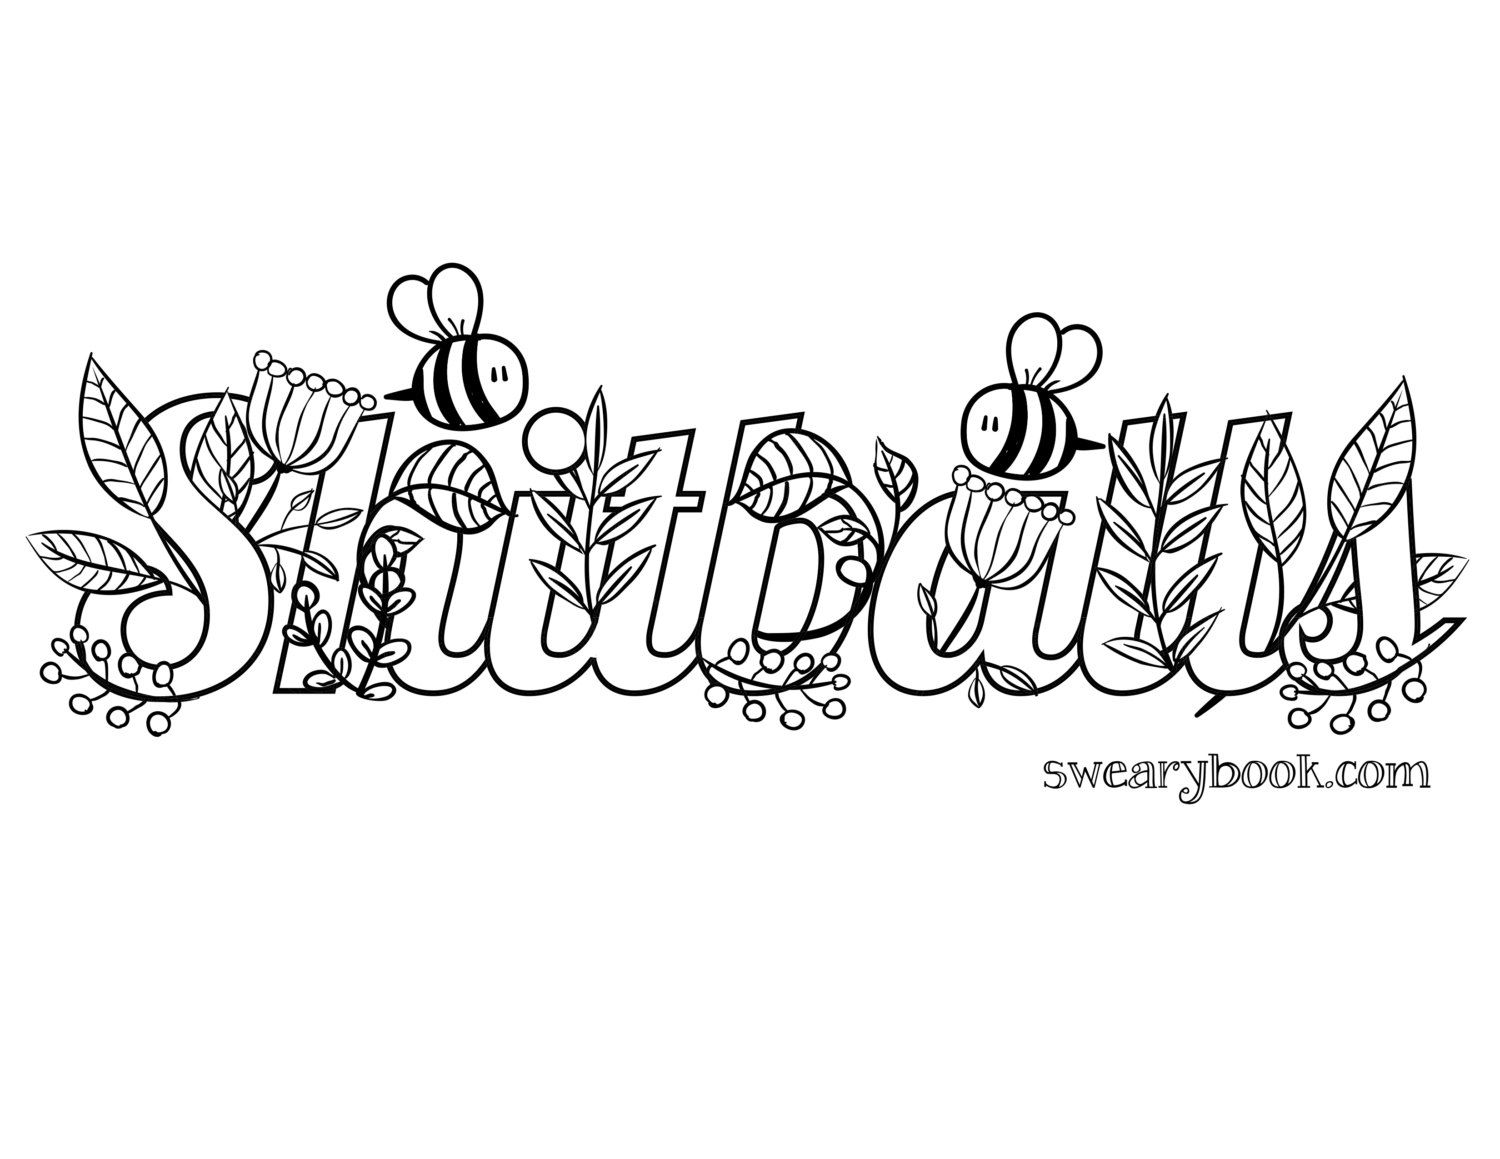 Bad word coloring pages -  Shitballs Swear Words Coloring Page From The Sweary Coloring Book Swearing Colouring Pages For